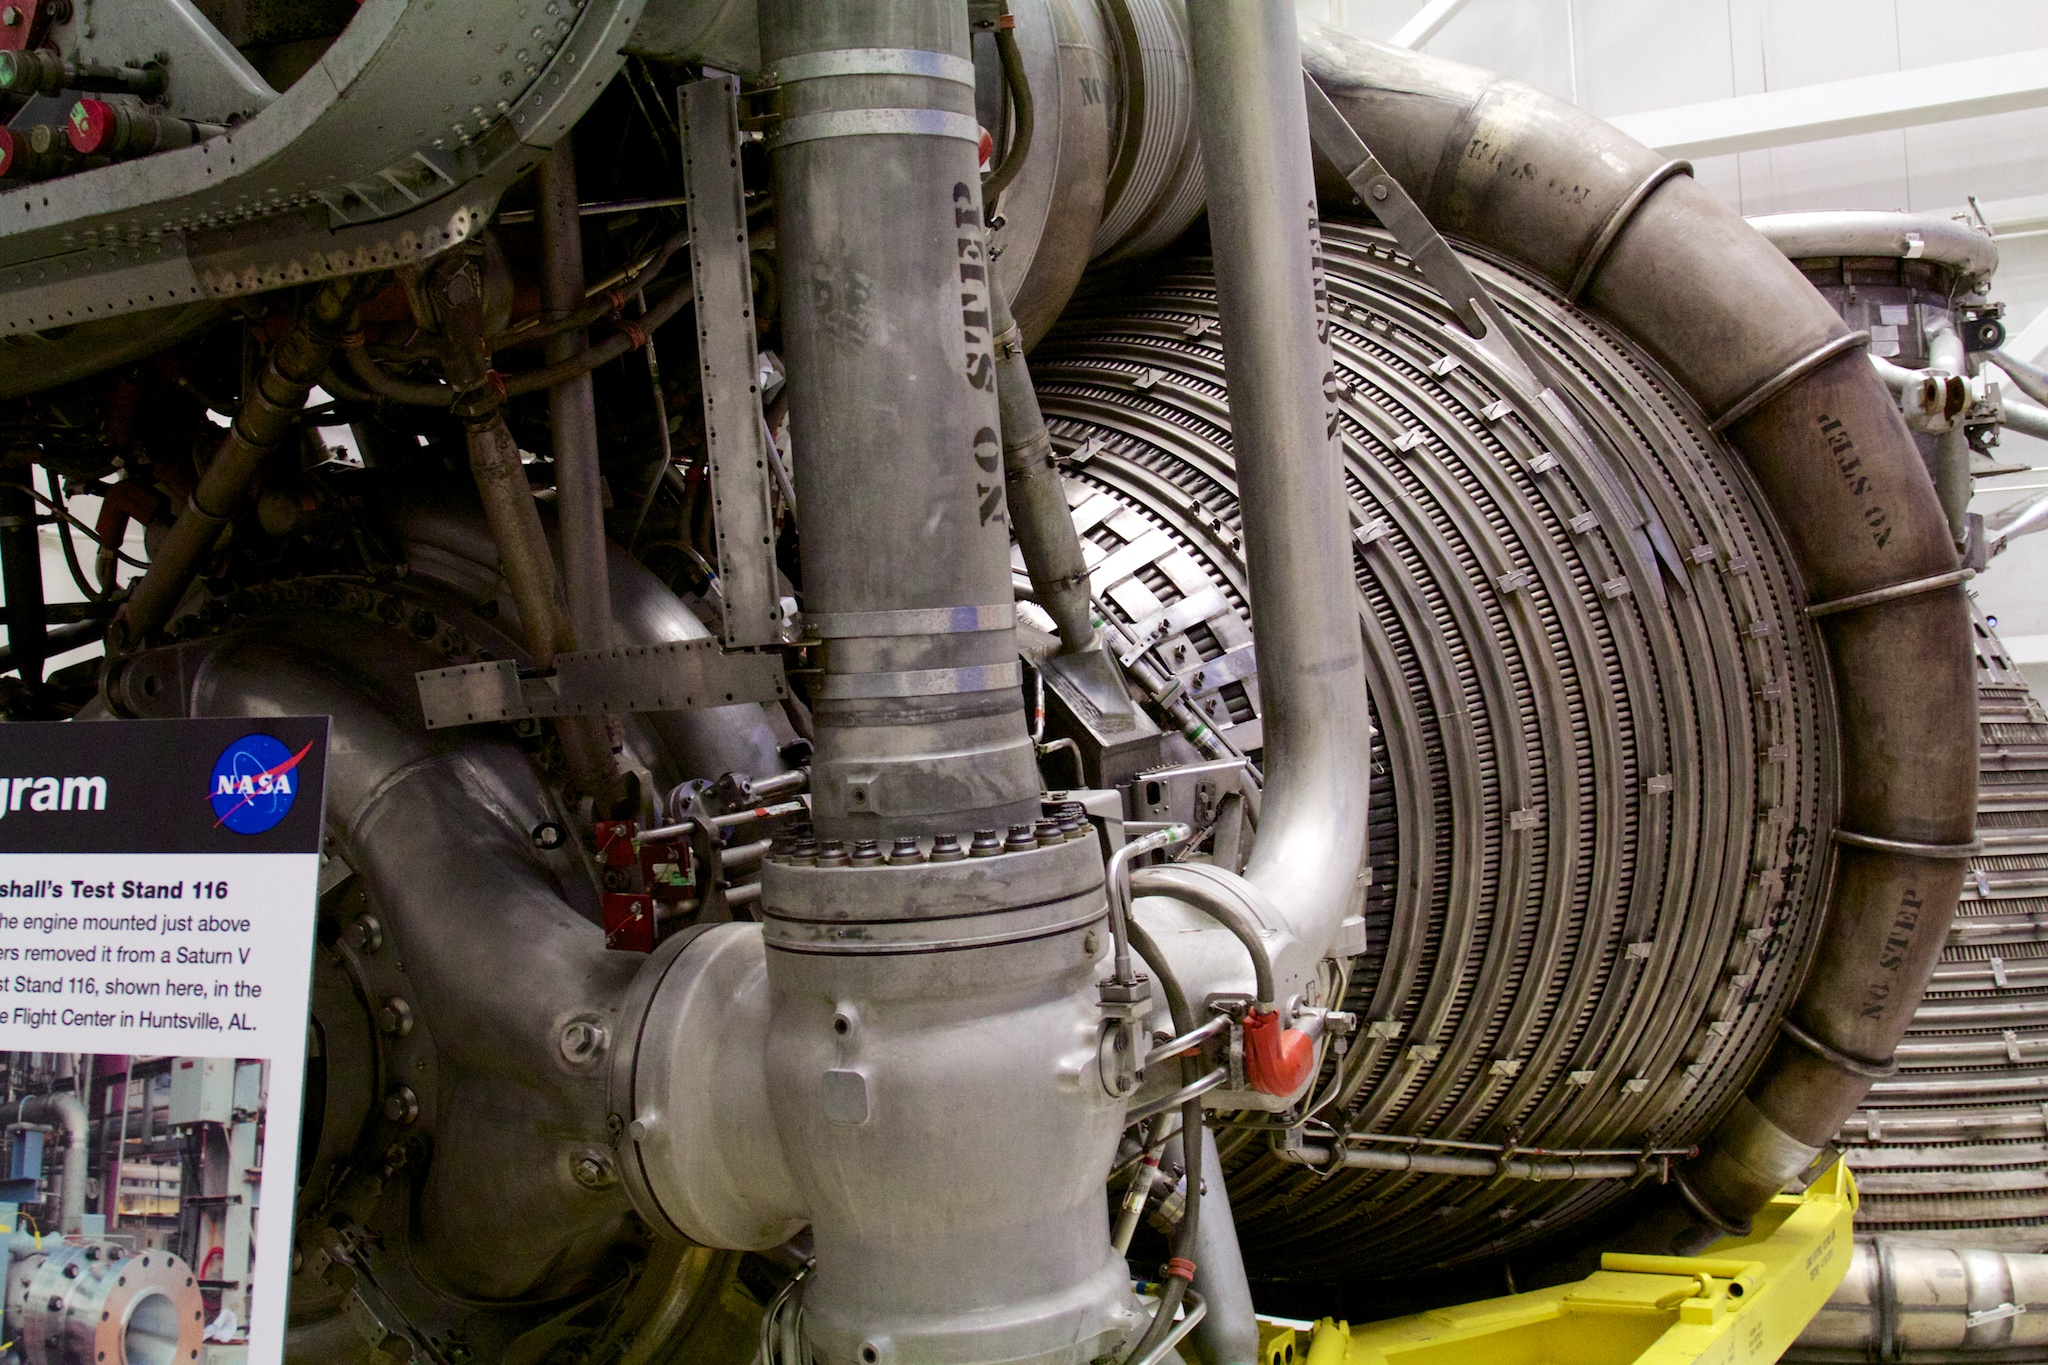 New F 1B rocket engine upgrades Apollo era design with 1 8M lbs of